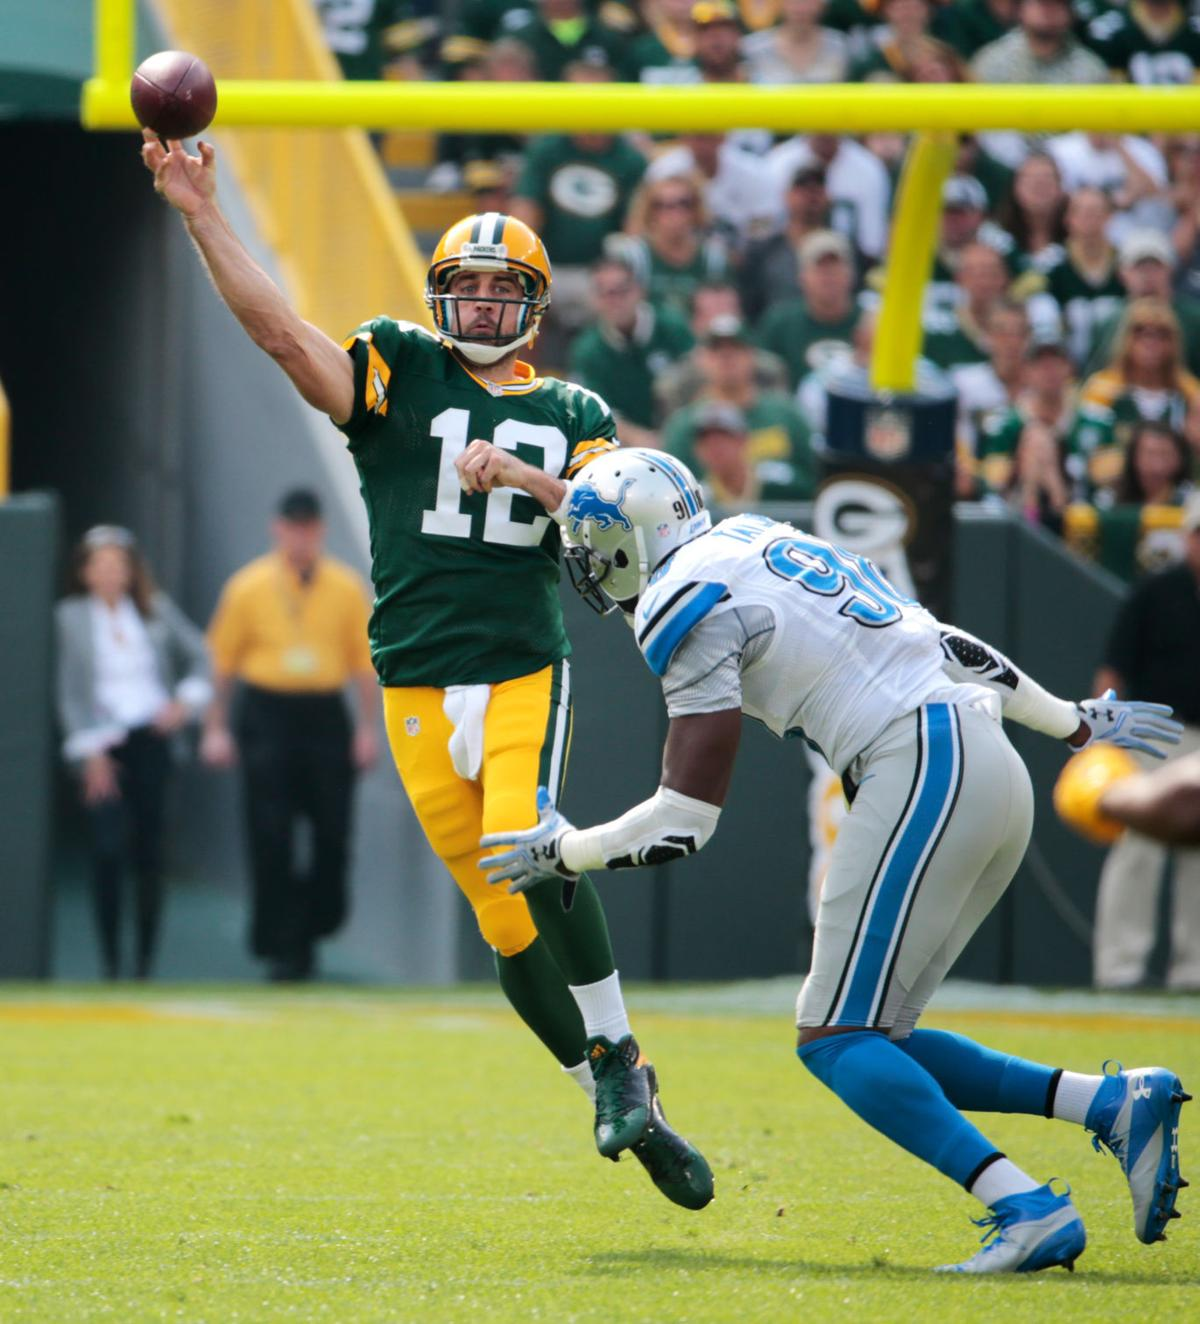 Packers Aaron Rodgers Hot Hand In First Half Spurs Win Over Lions Home Opener